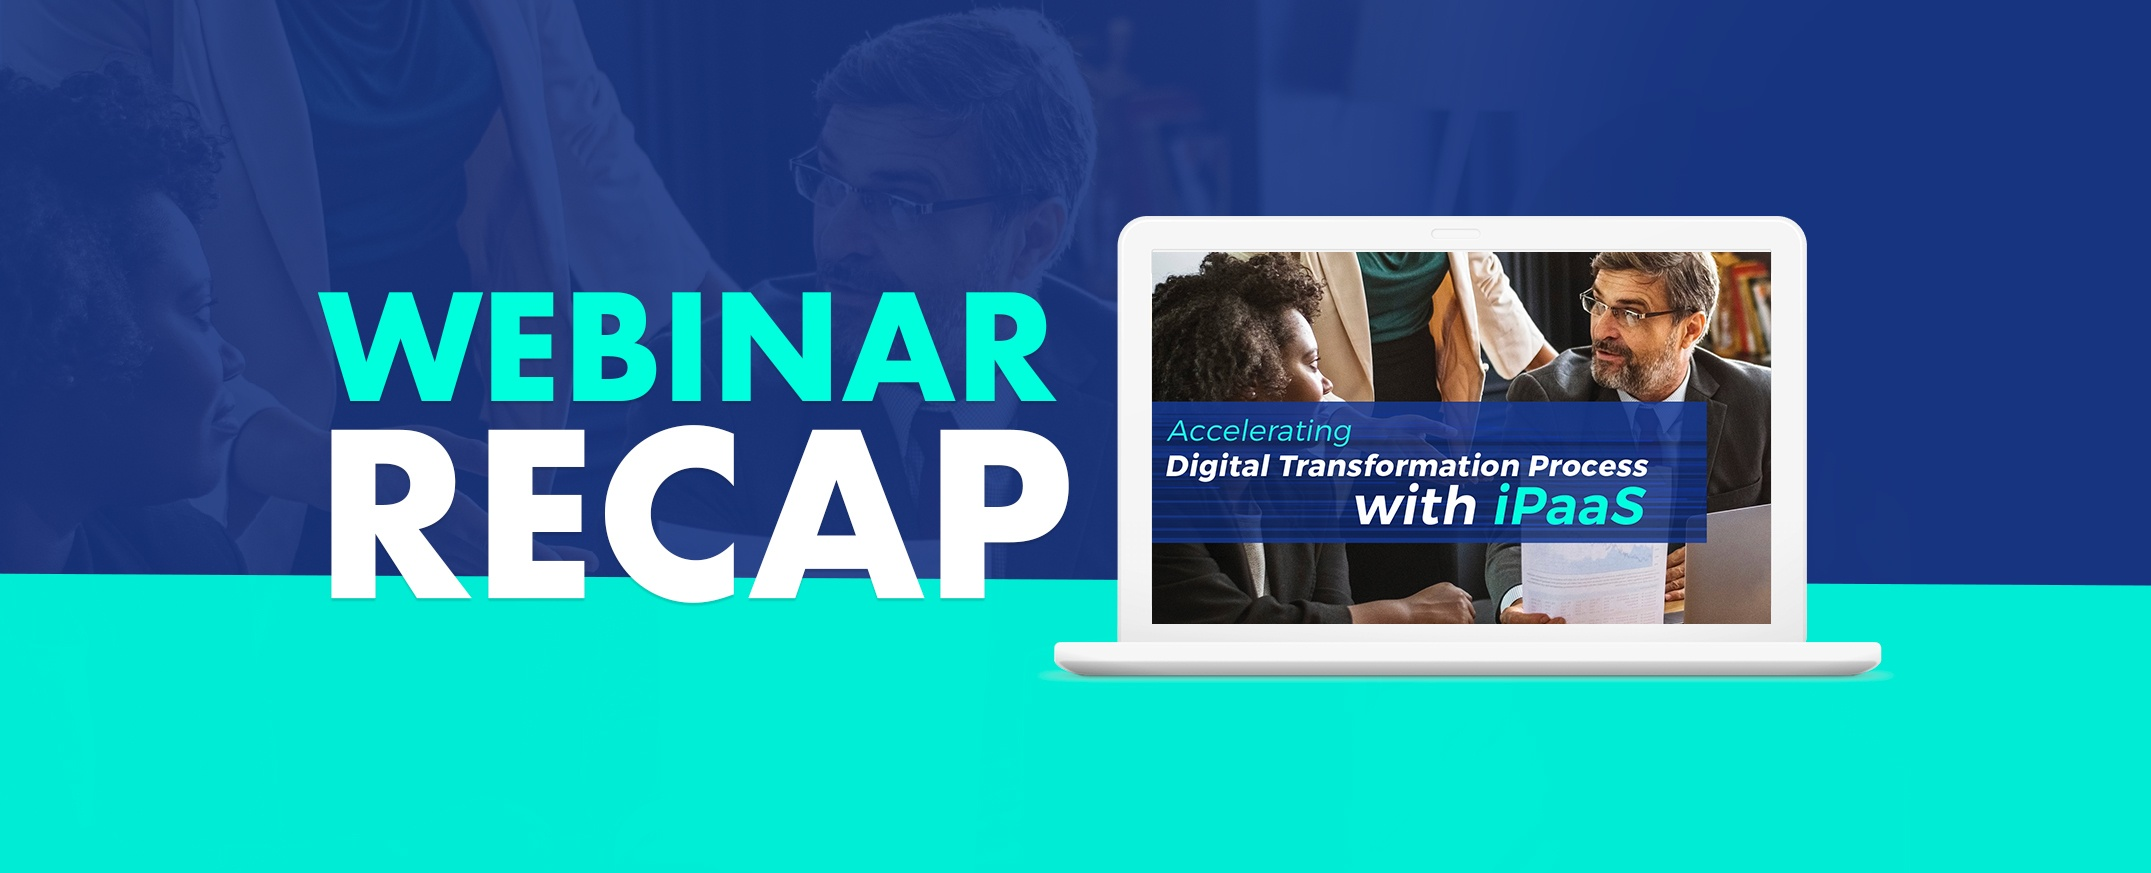 webinar-Accelerating-Digital-Transformation-Process-with-iPaaS